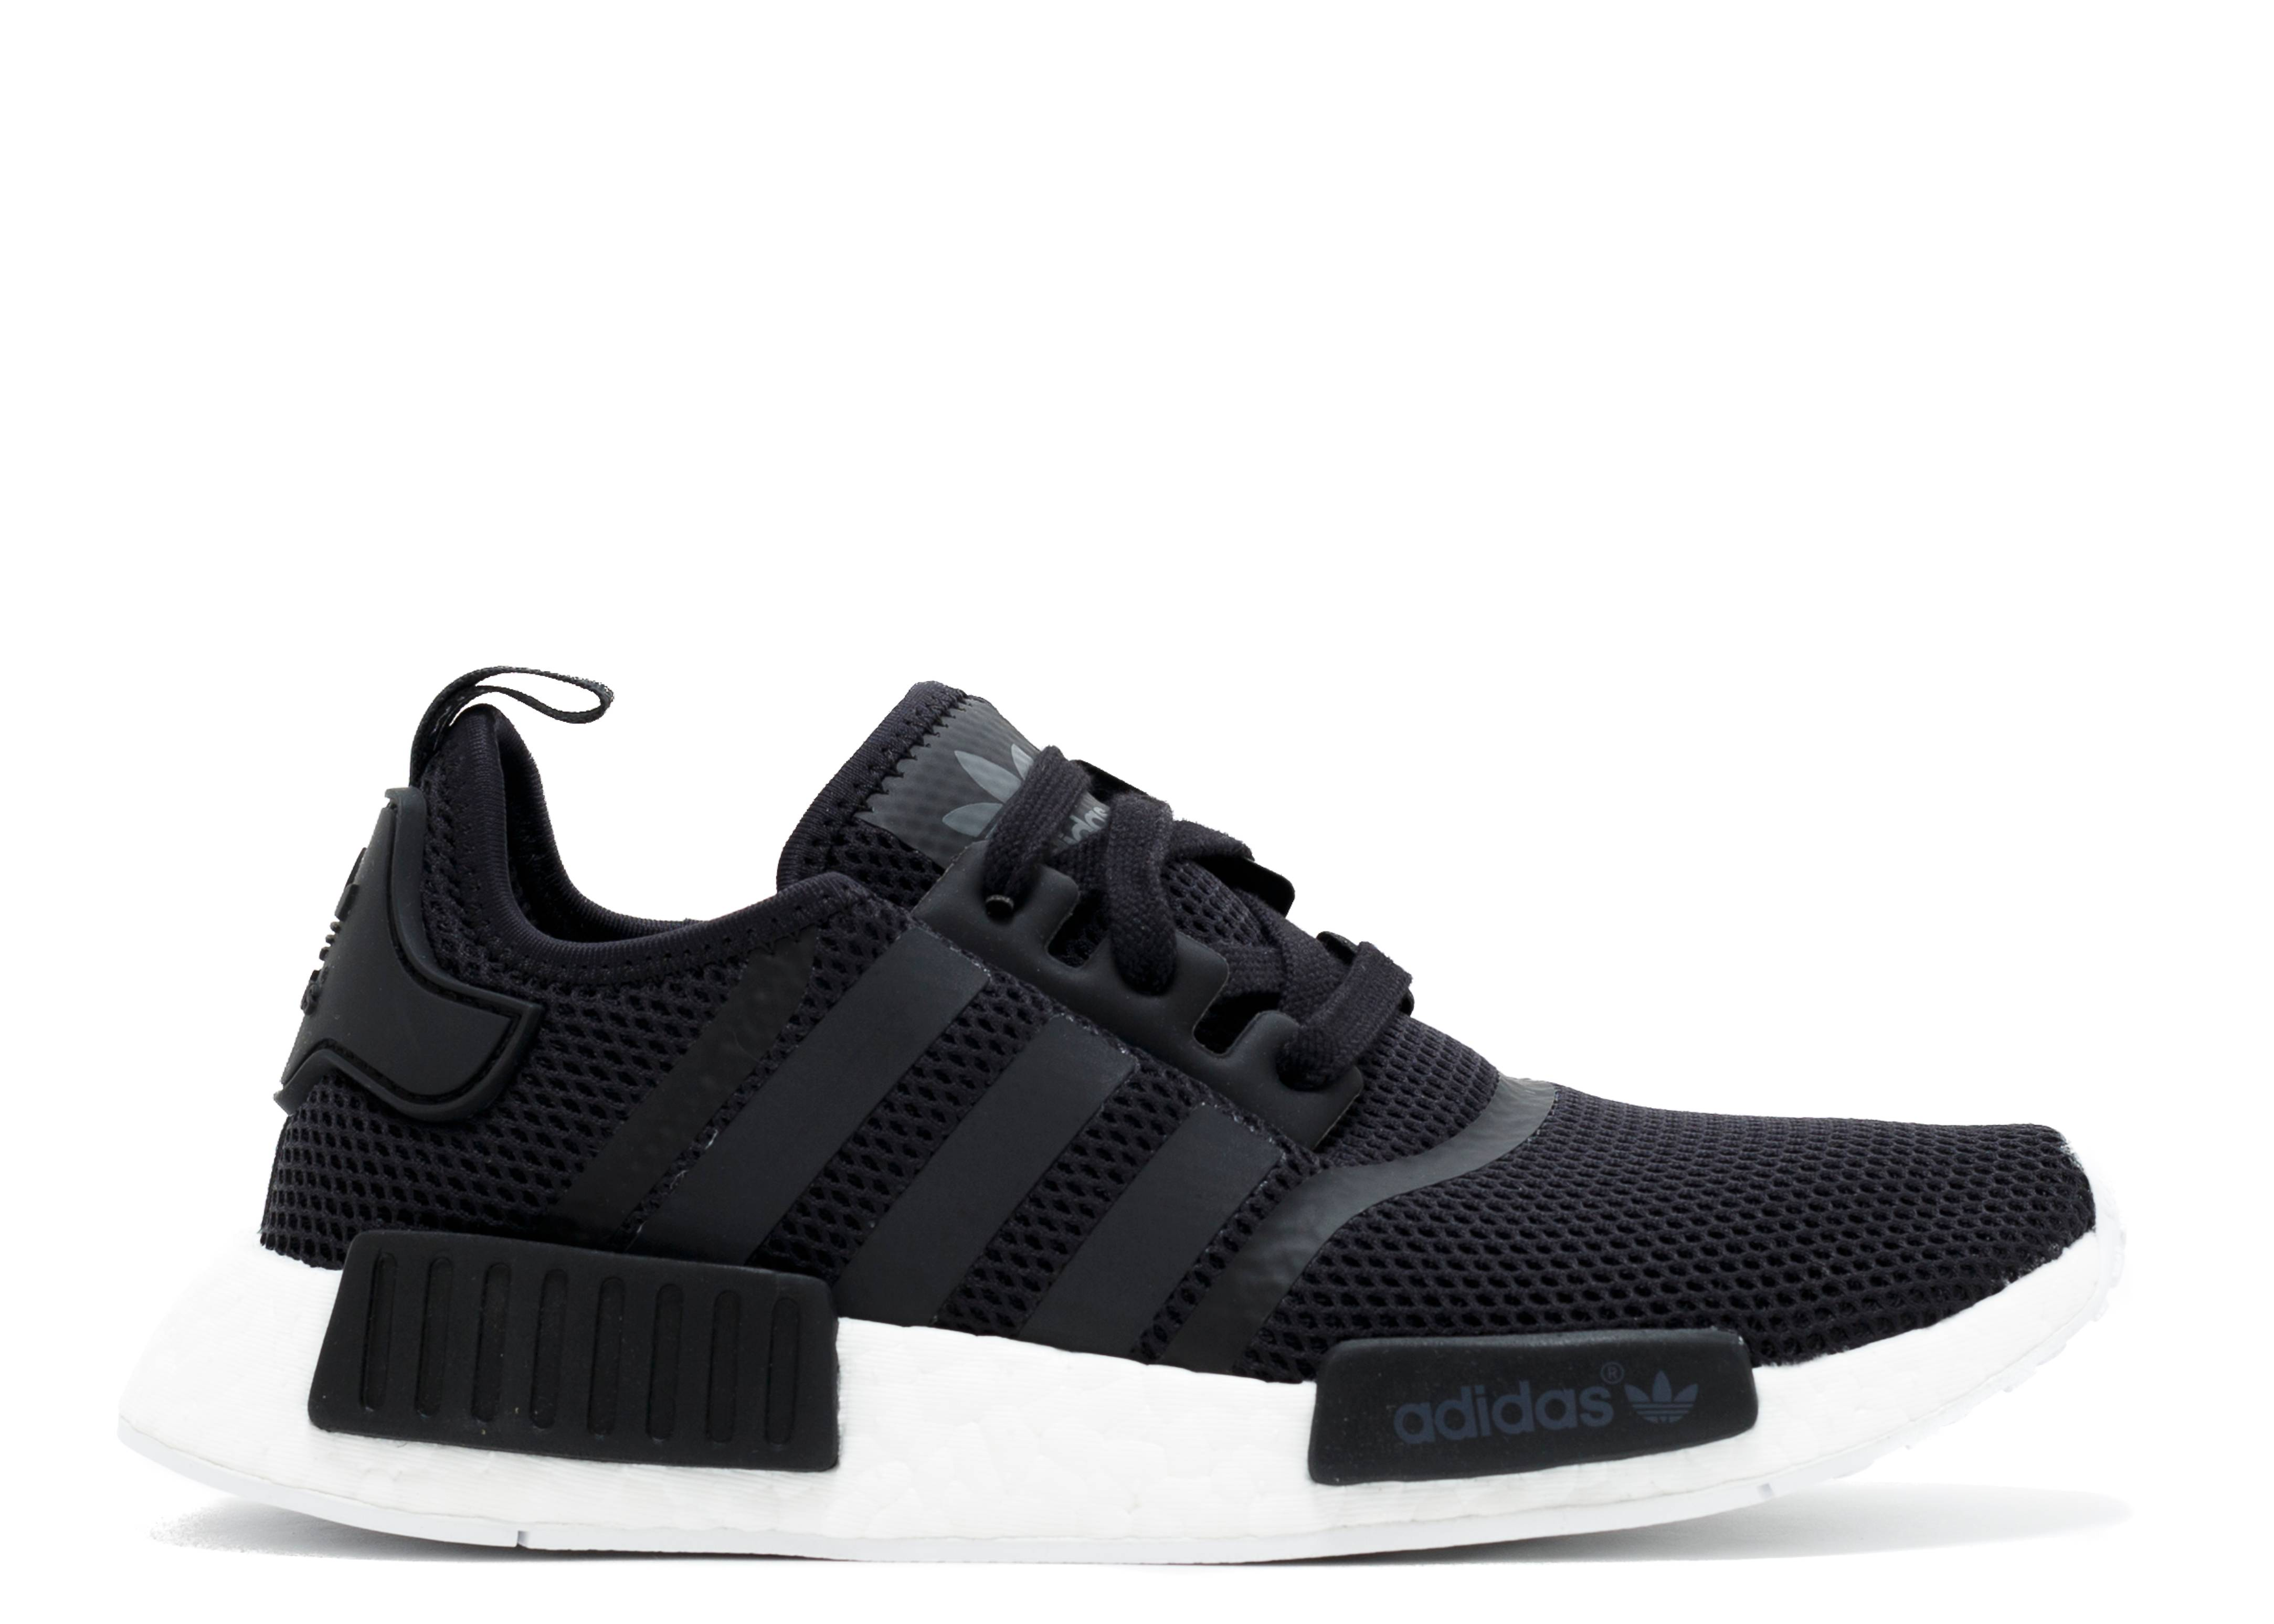 Nmd R1 Black White Flight Club